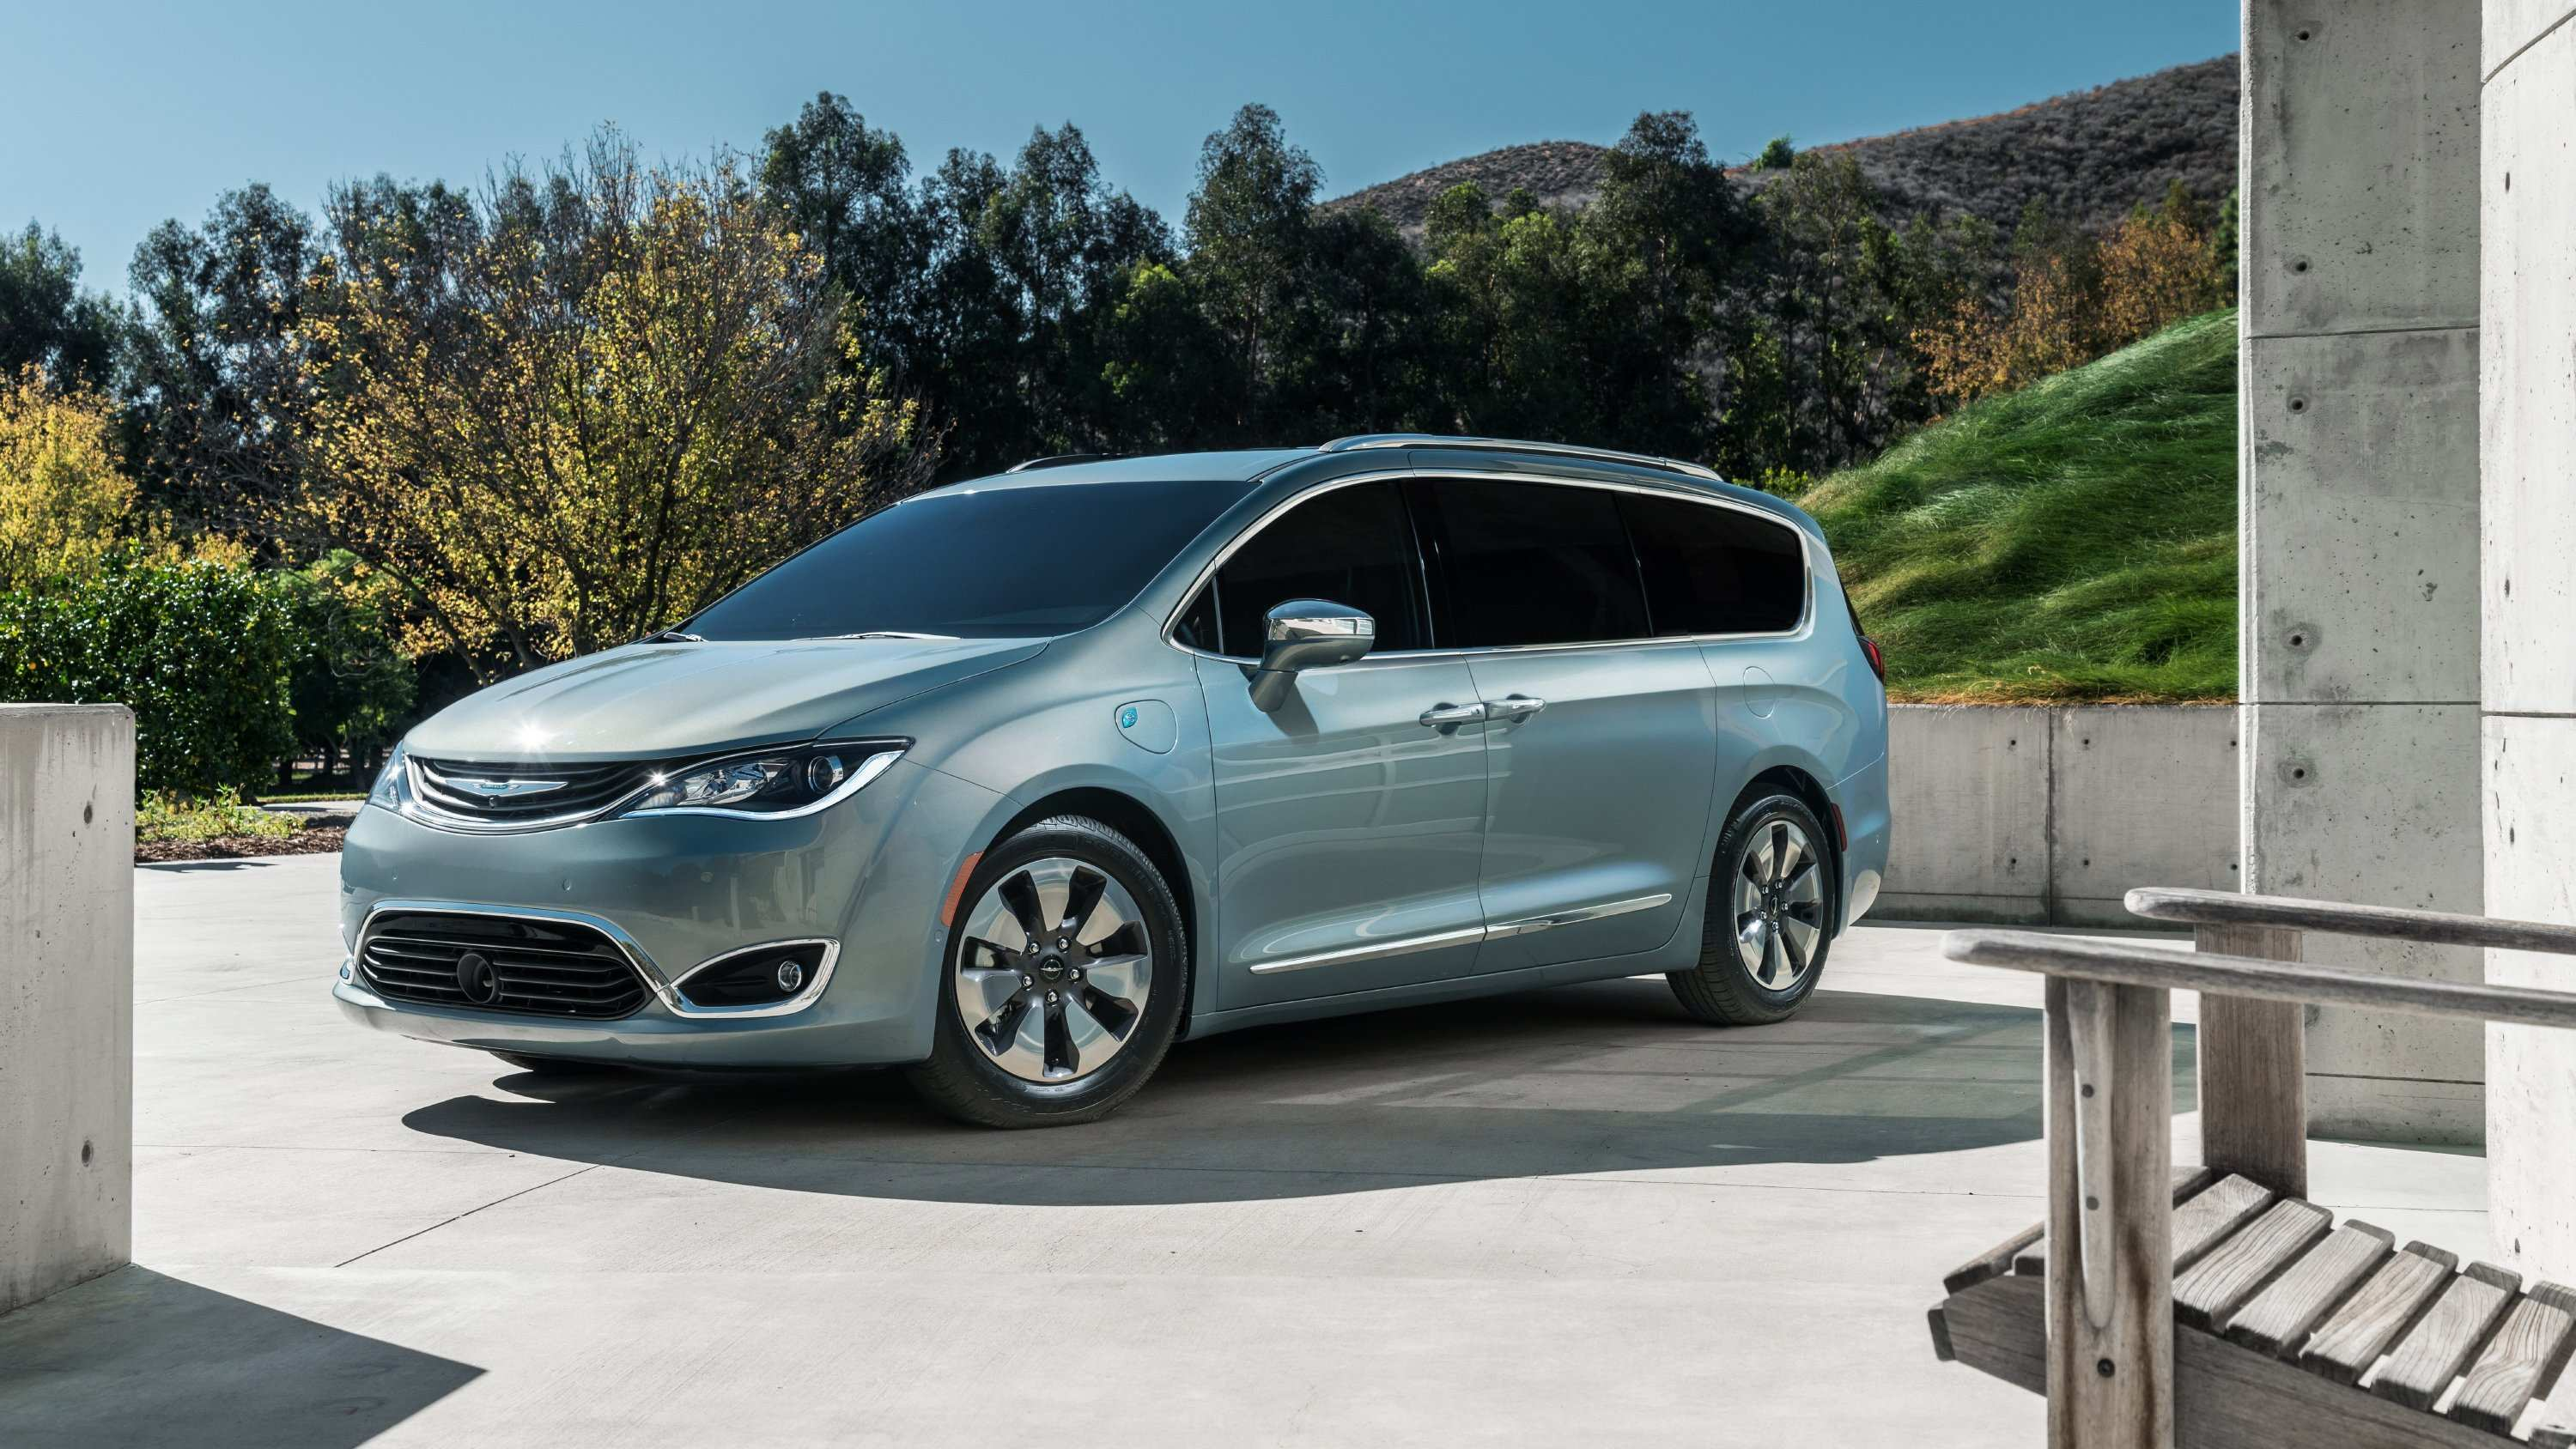 27 New 2019 Tesla Minivan Pricing